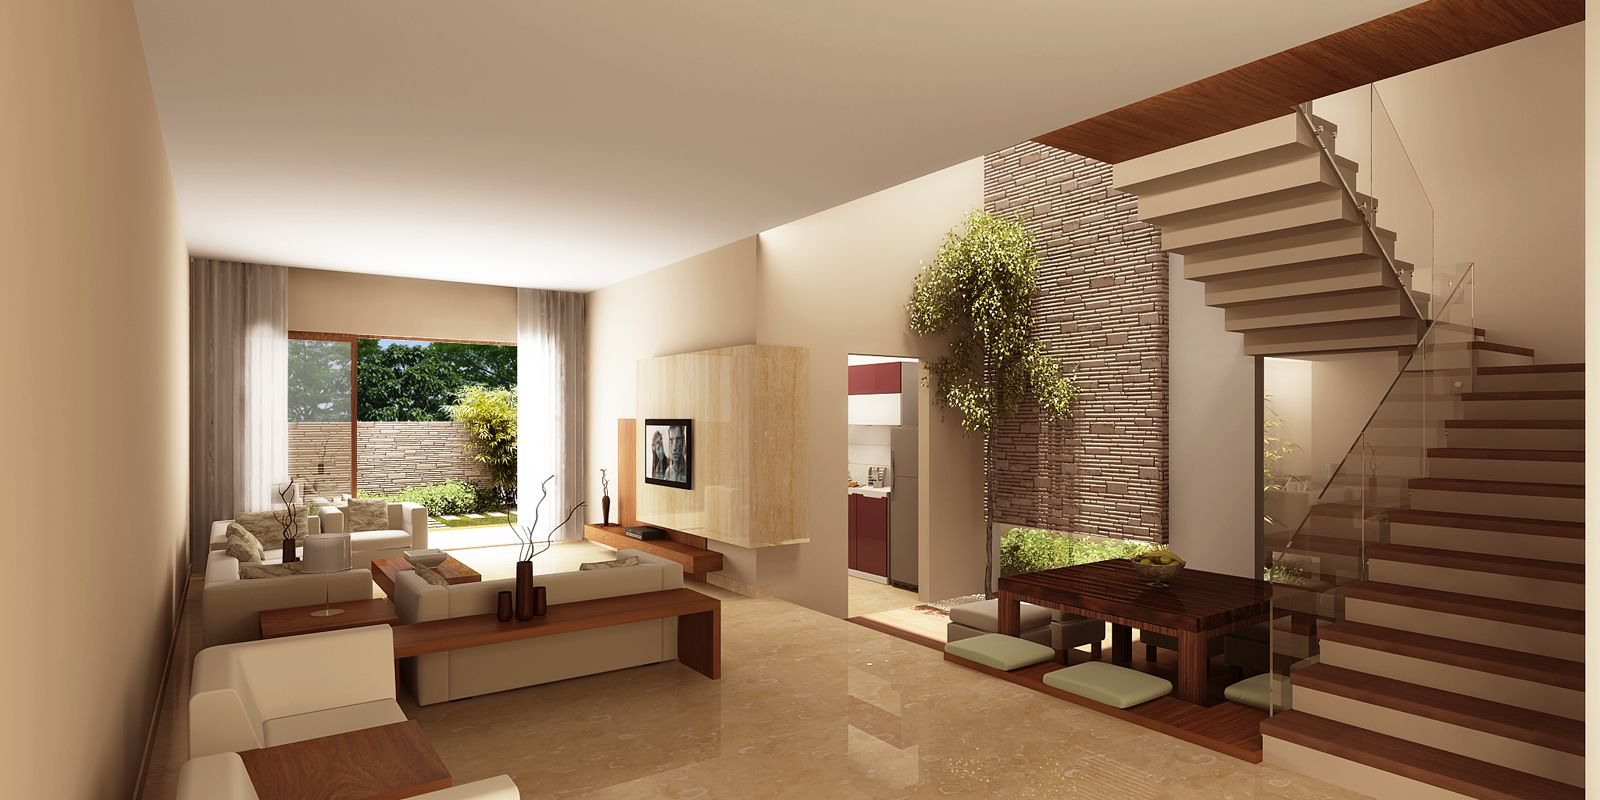 Kerala Homes Modern Interior Kerala Modern Homes Interior Designs